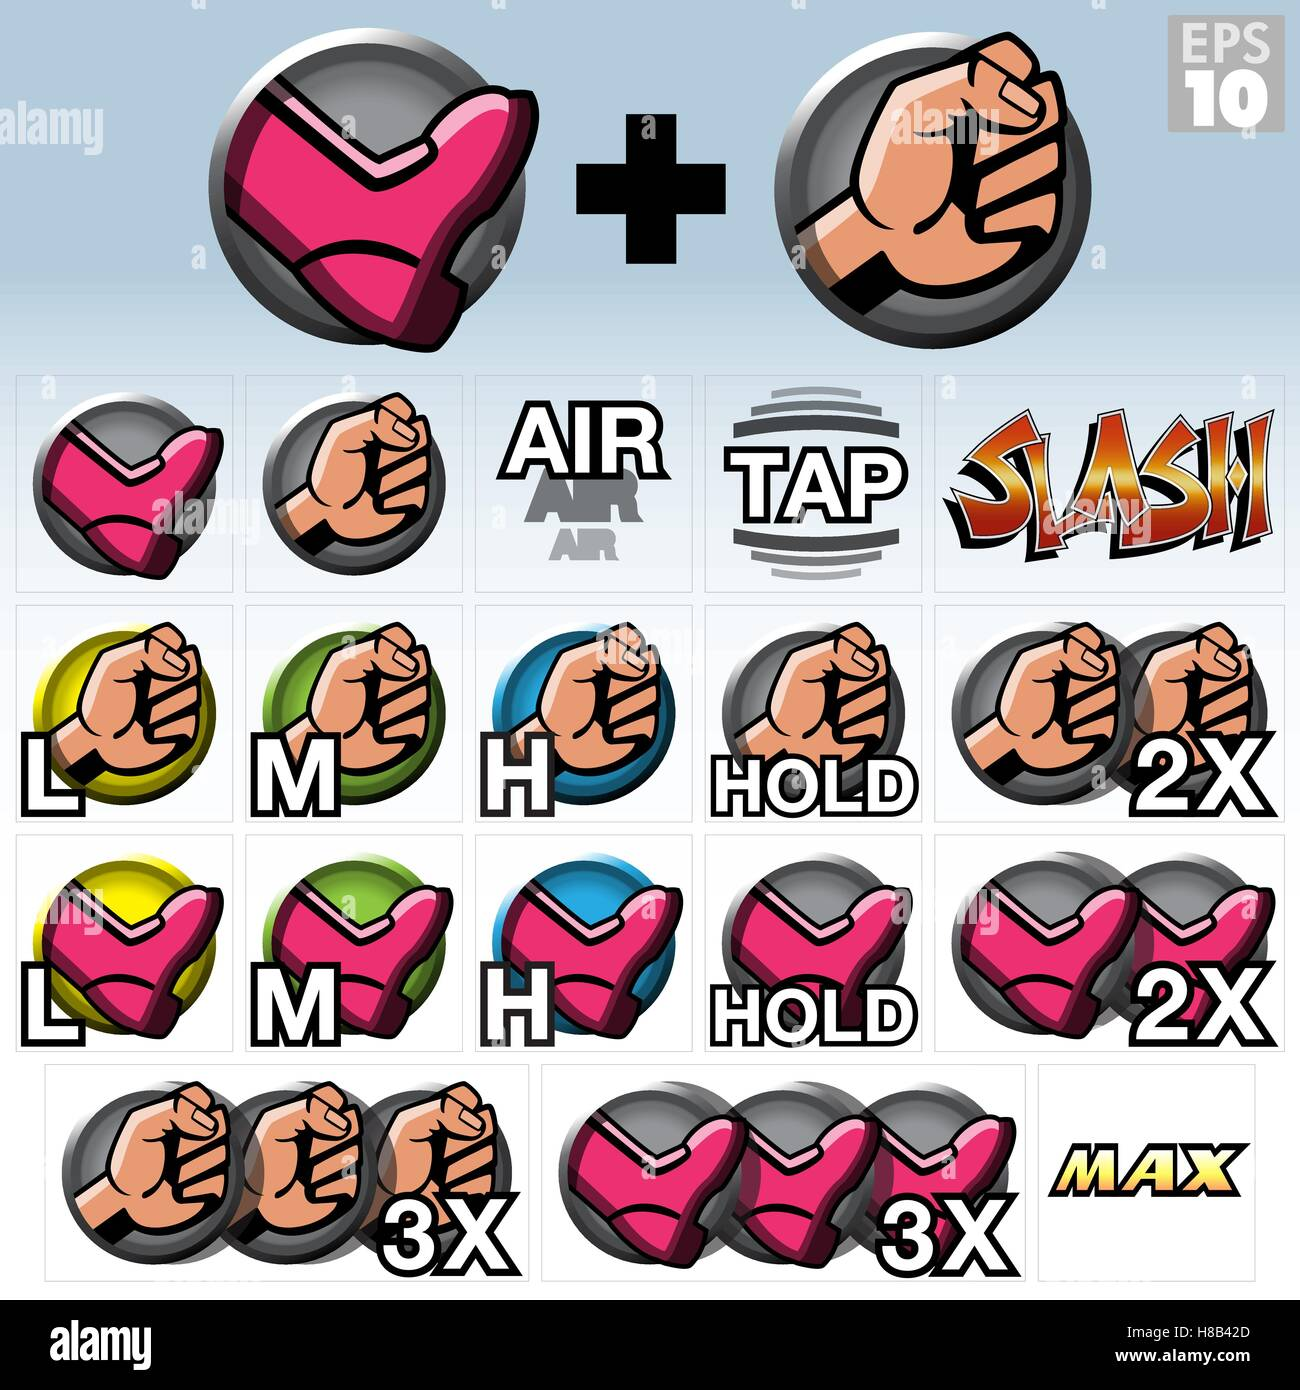 Arcade Video Game Fighting Style Icons, Kick, Punch and Slash Moves - Stock Vector